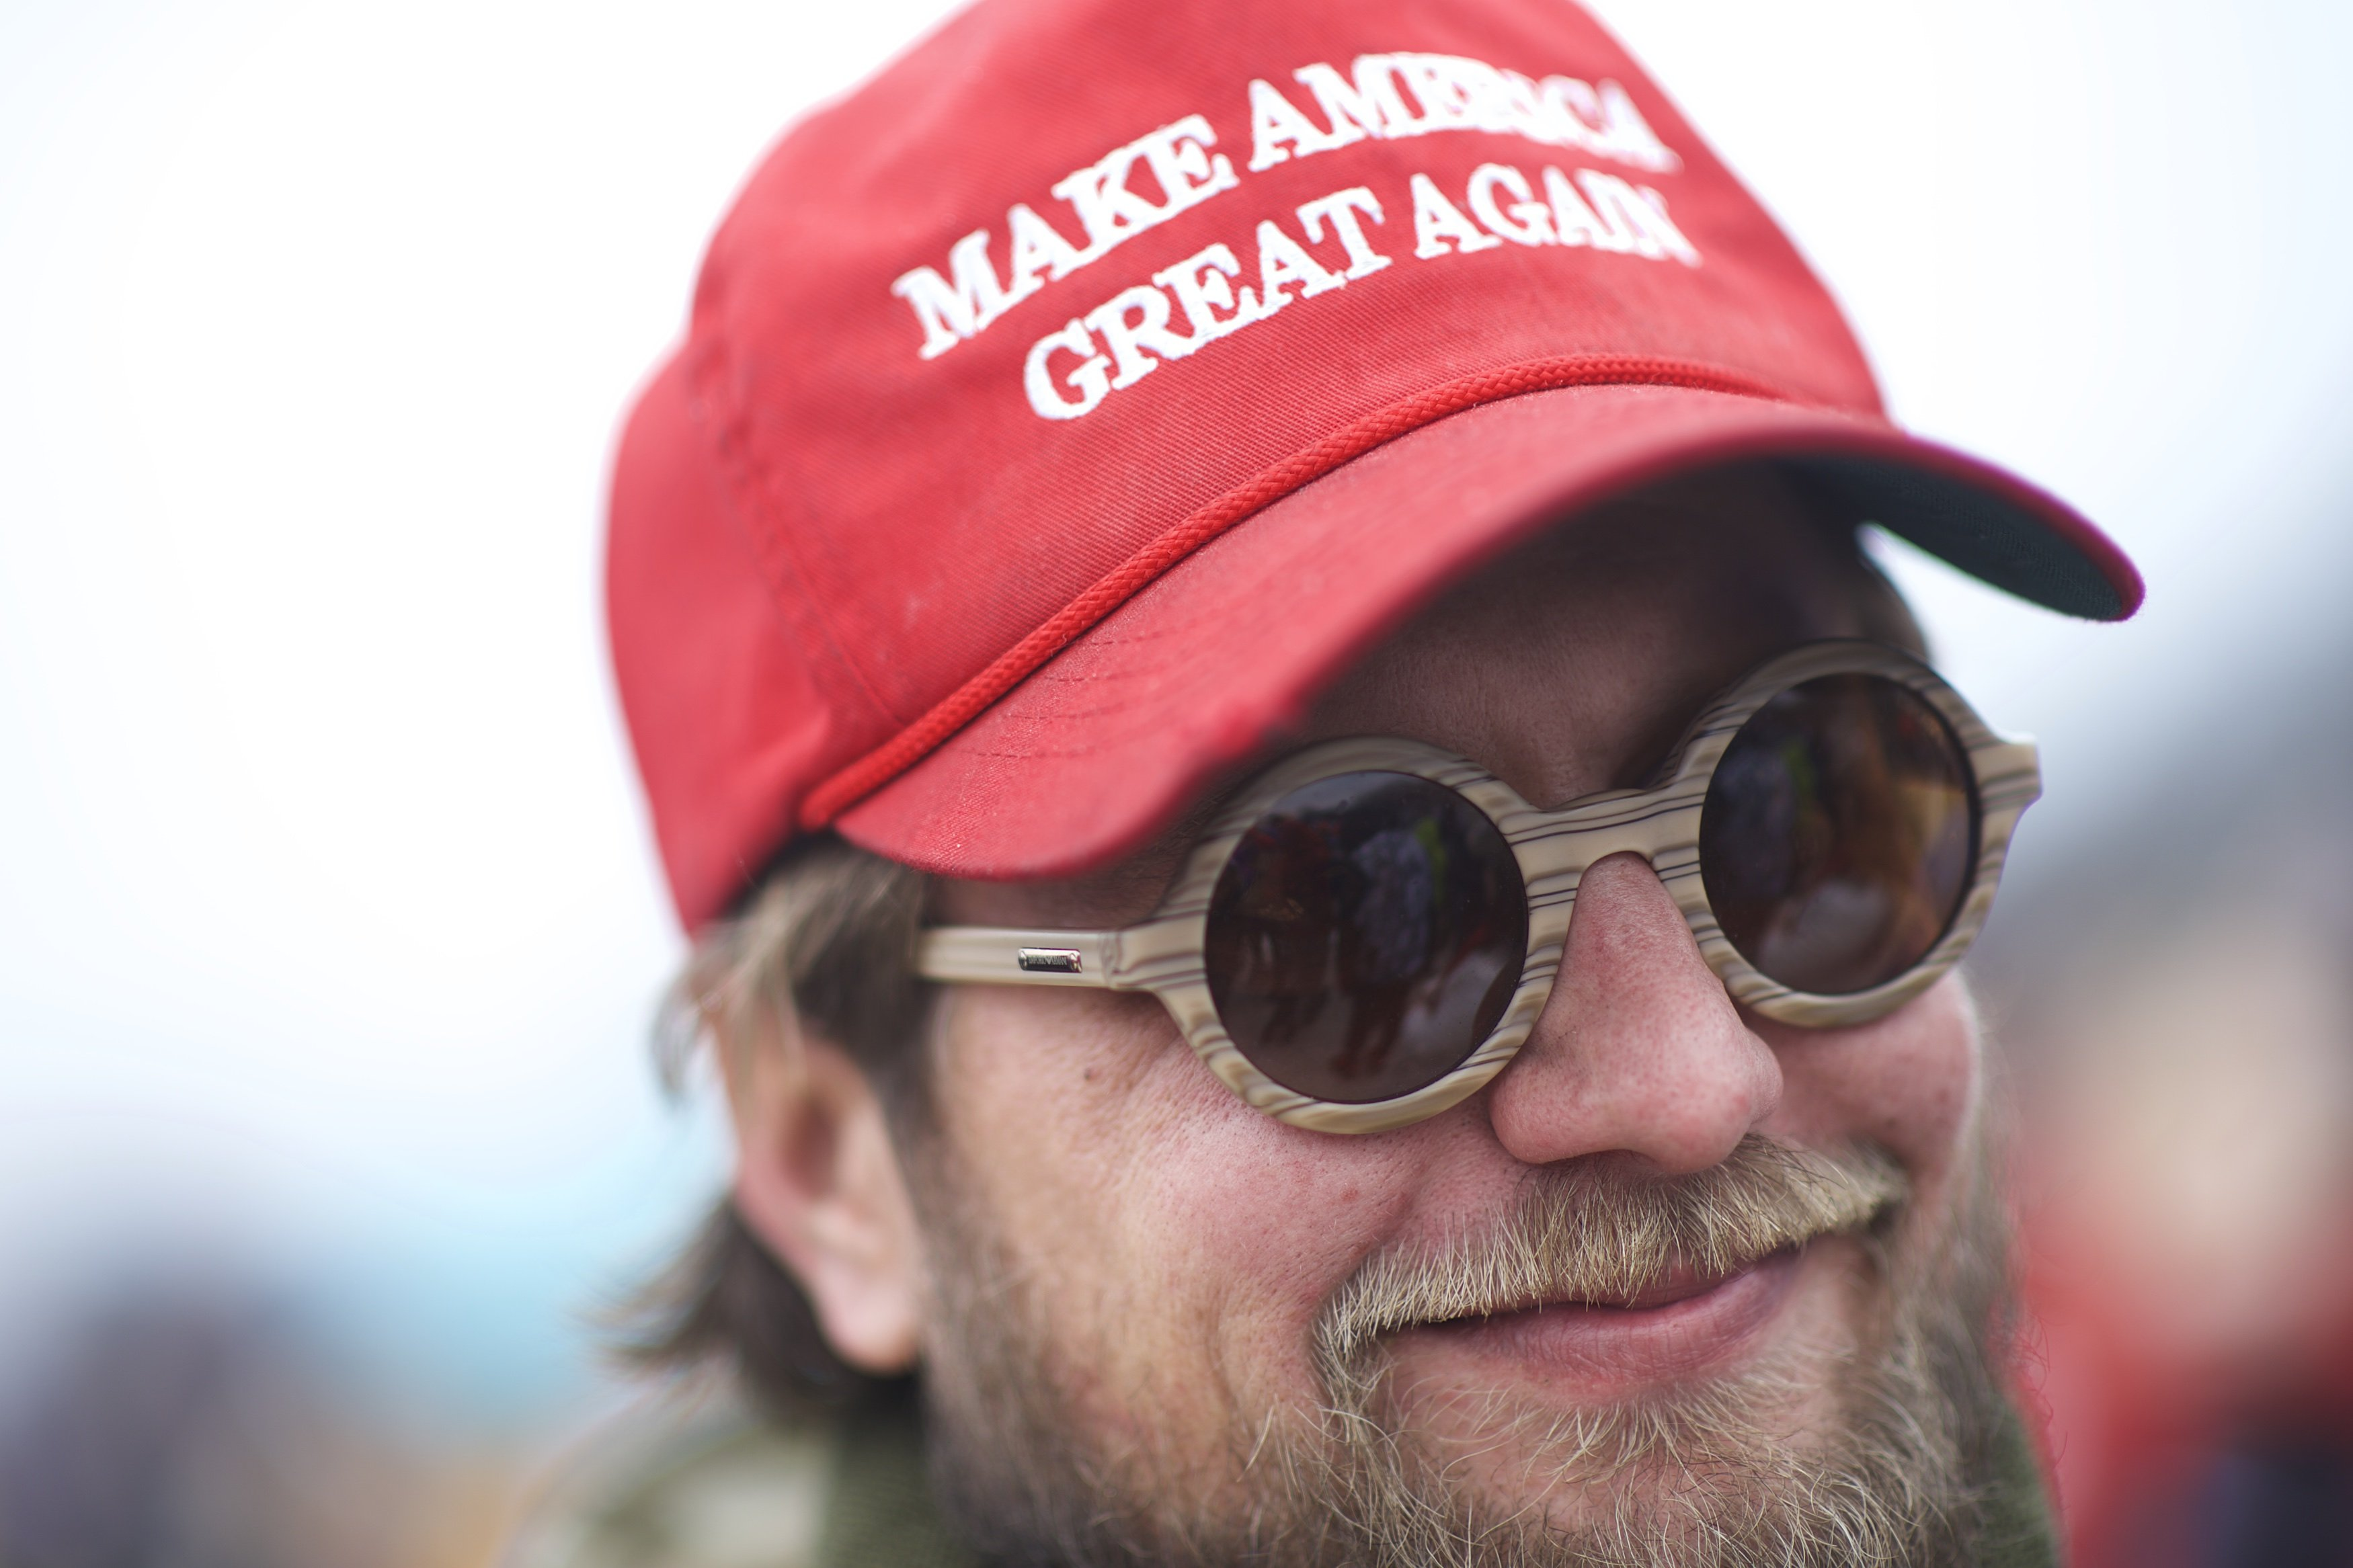 A Trump supporter wearing a MAGA hat | Photo: Getty Images